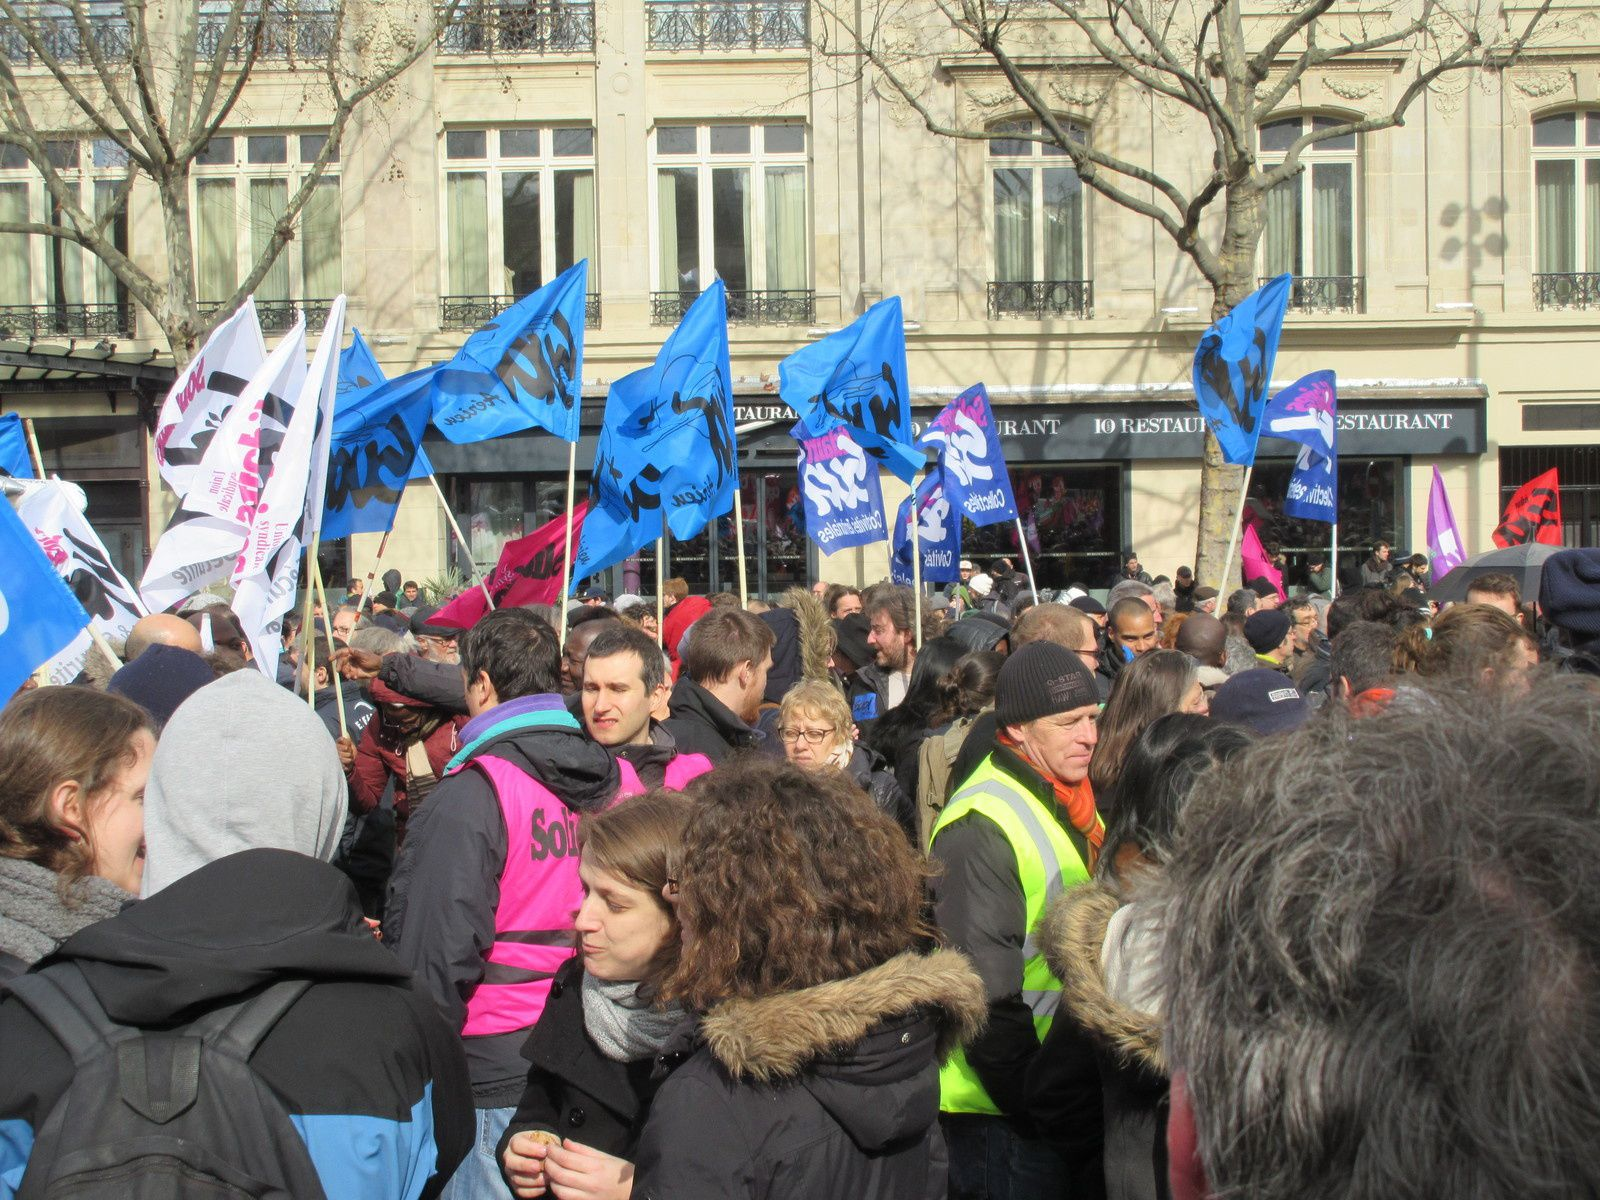 Quelques photos des manifs du 9 mars à Paris